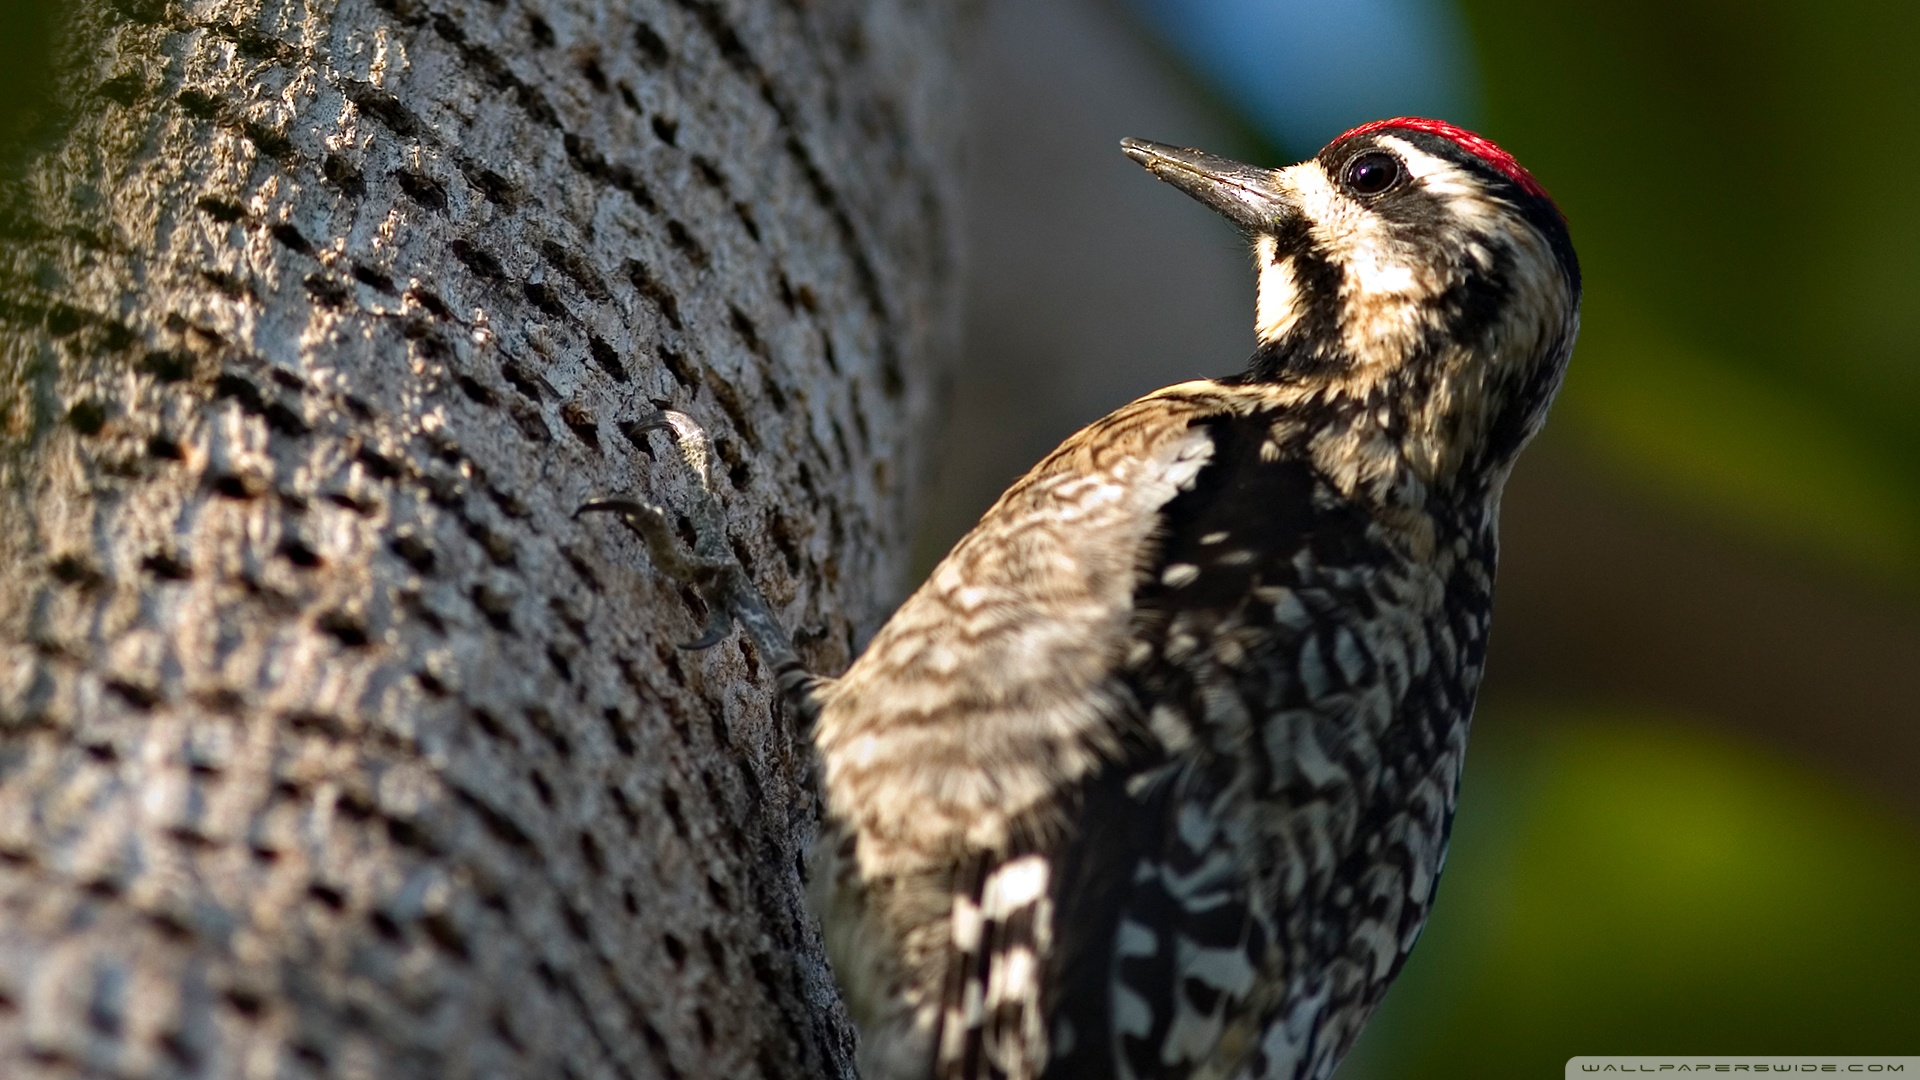 Woodpecker Wallpaper